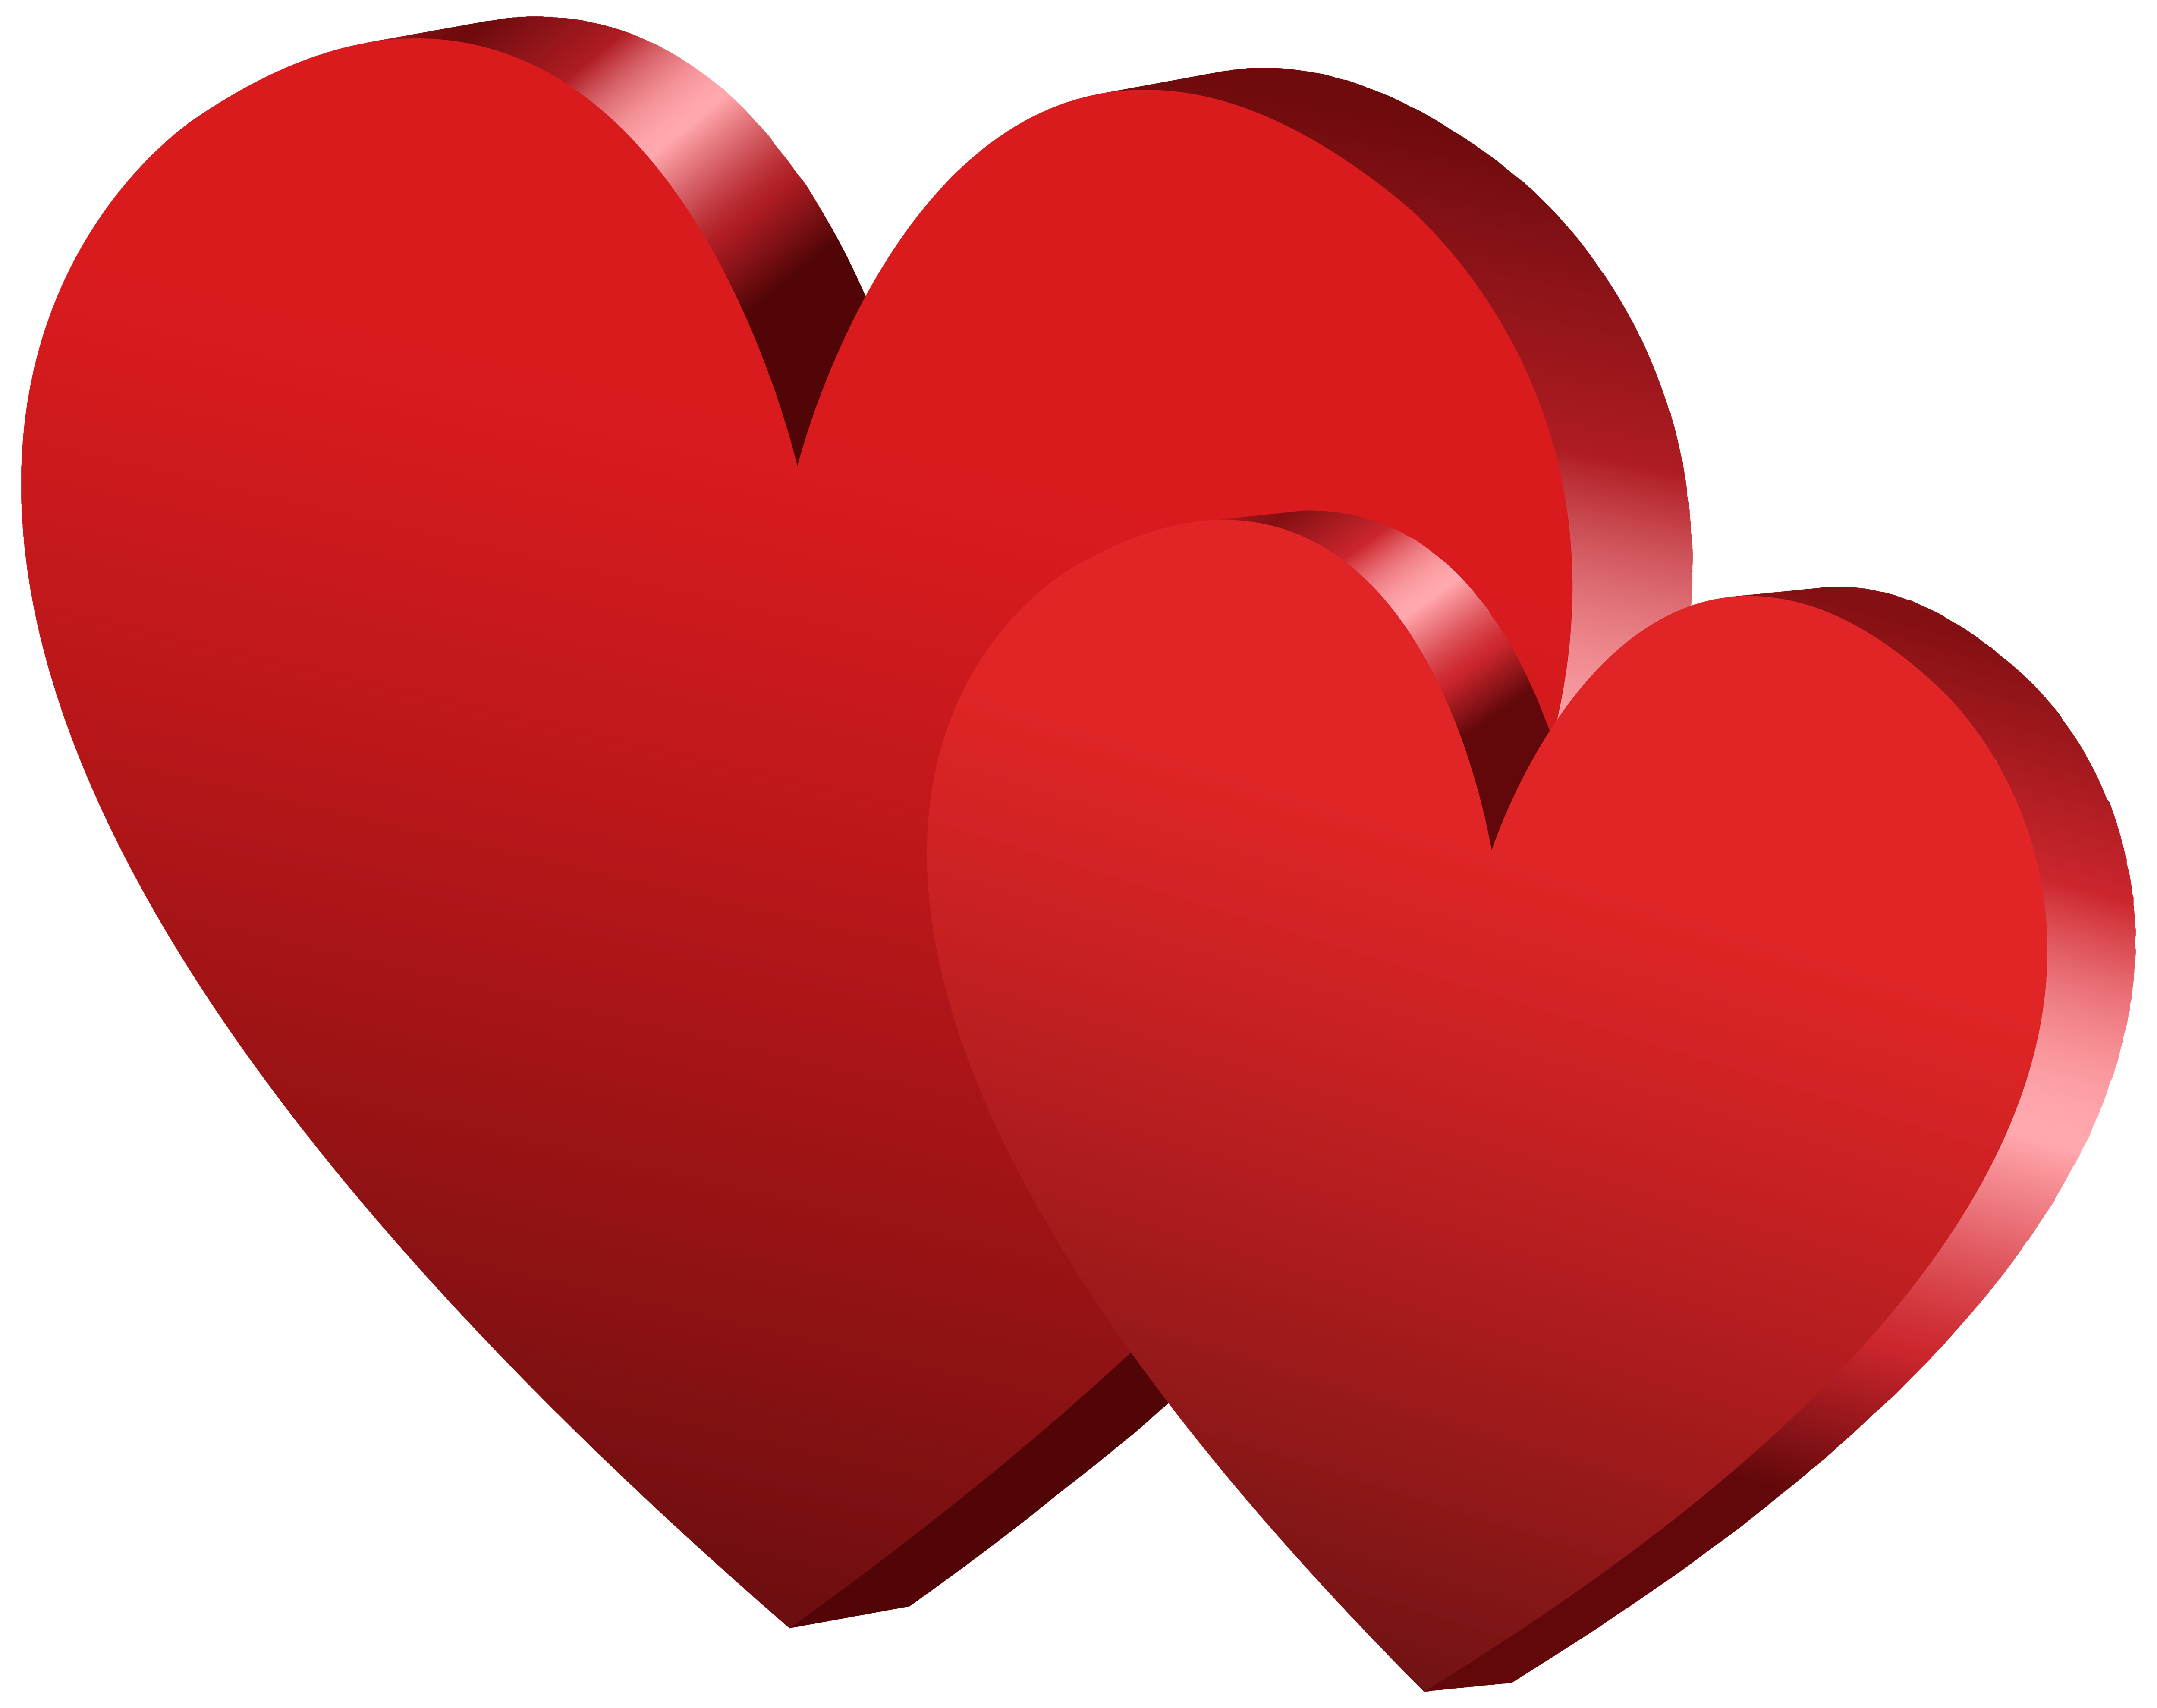 Red hearts png. Clipart best web